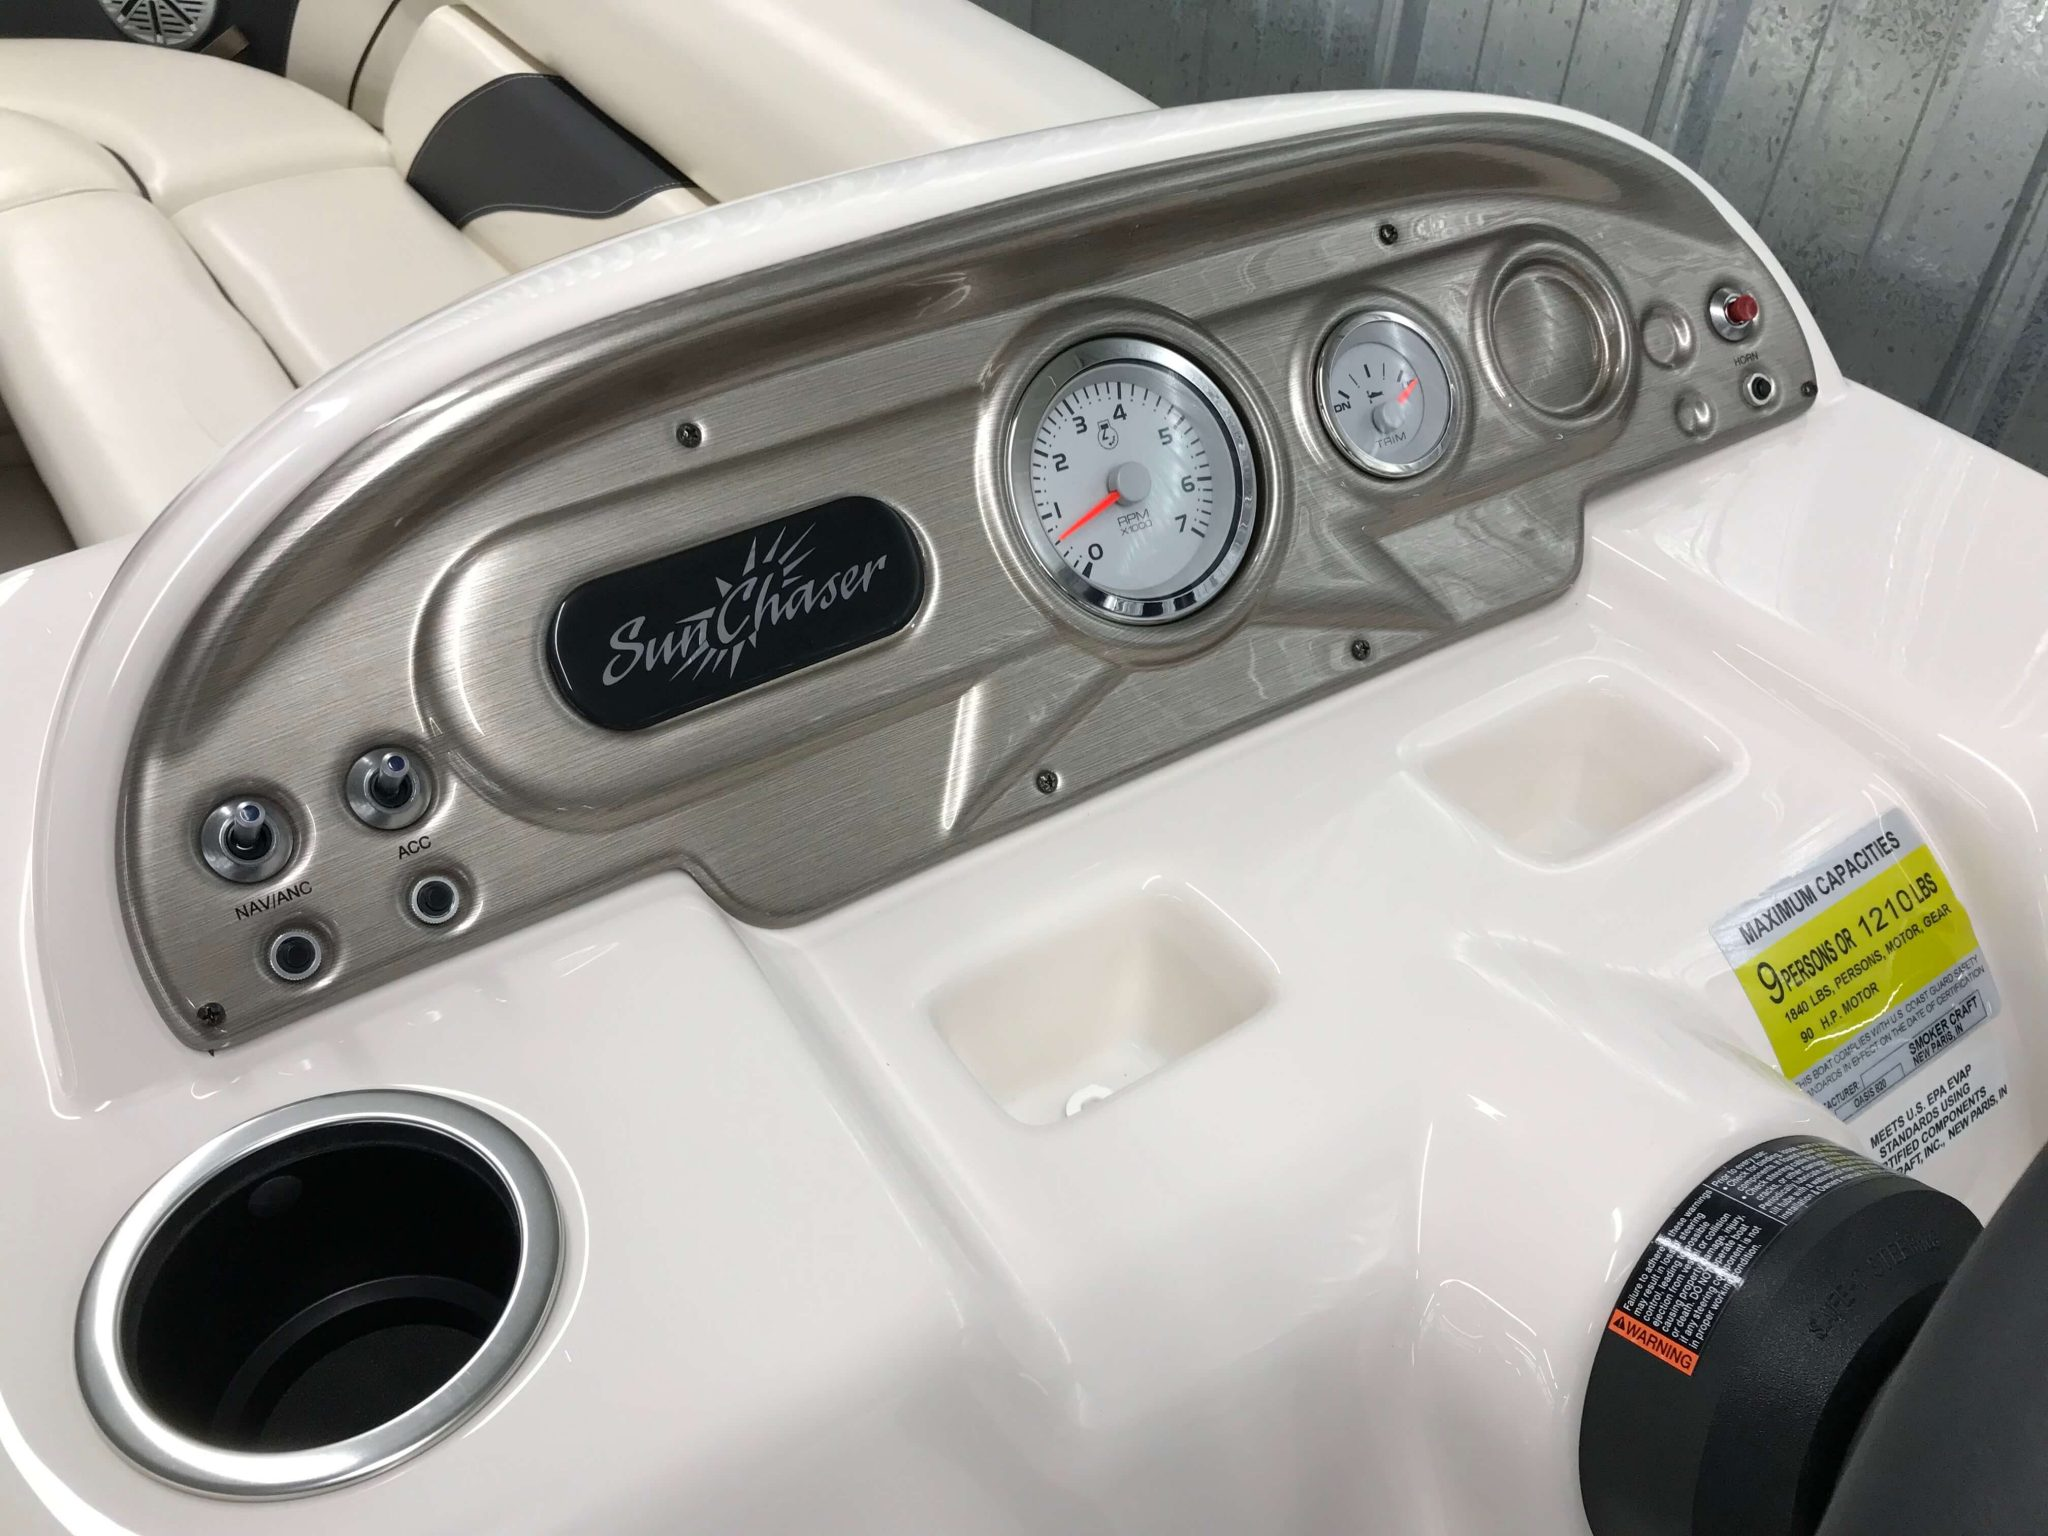 2019 SunChaser Oasis 820 Cruise Dash And Gauges